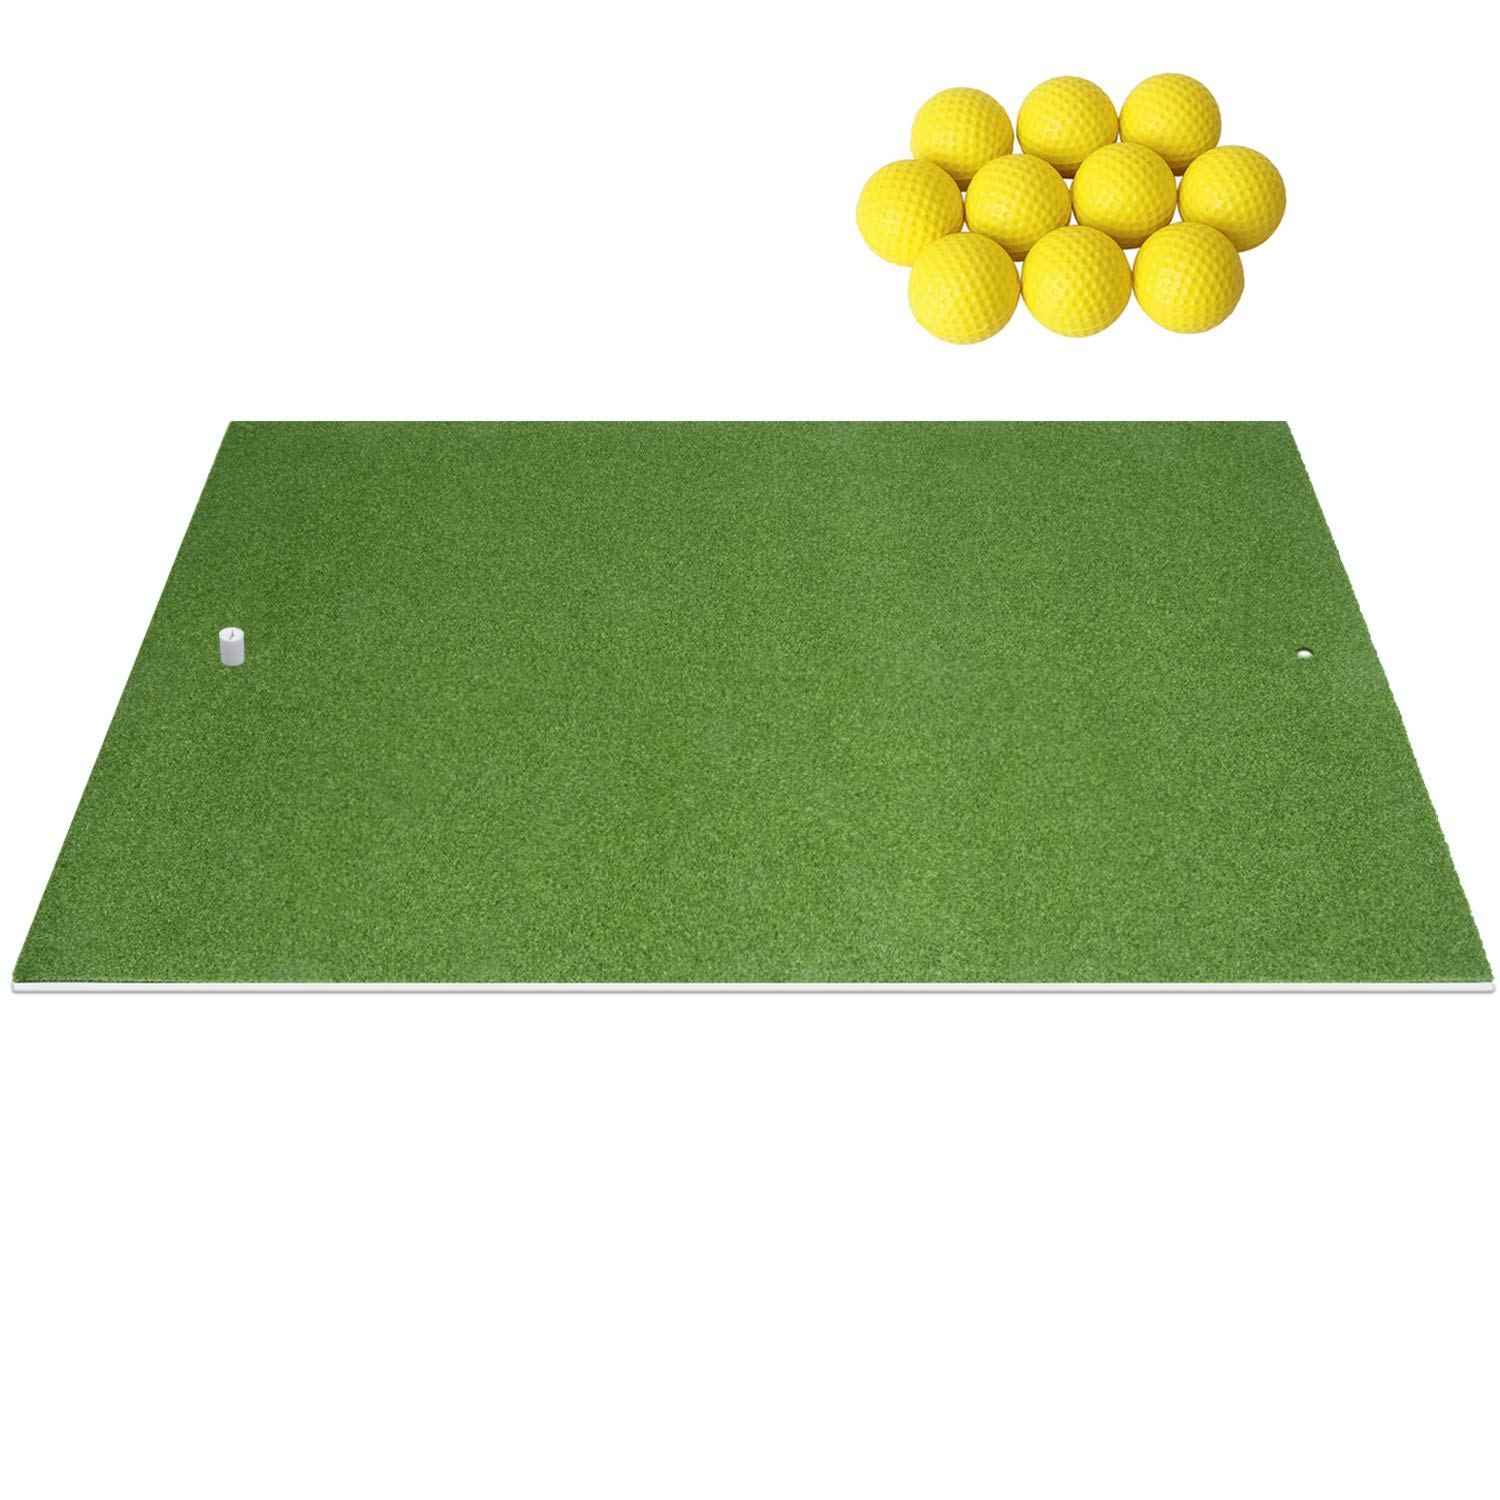 SkyLife Golf Practice Mat Driving Chipping Putting Hitting Turf Training Equipment for Backyard Home Garage Outdoor Use (4' x 5') by SkyLife